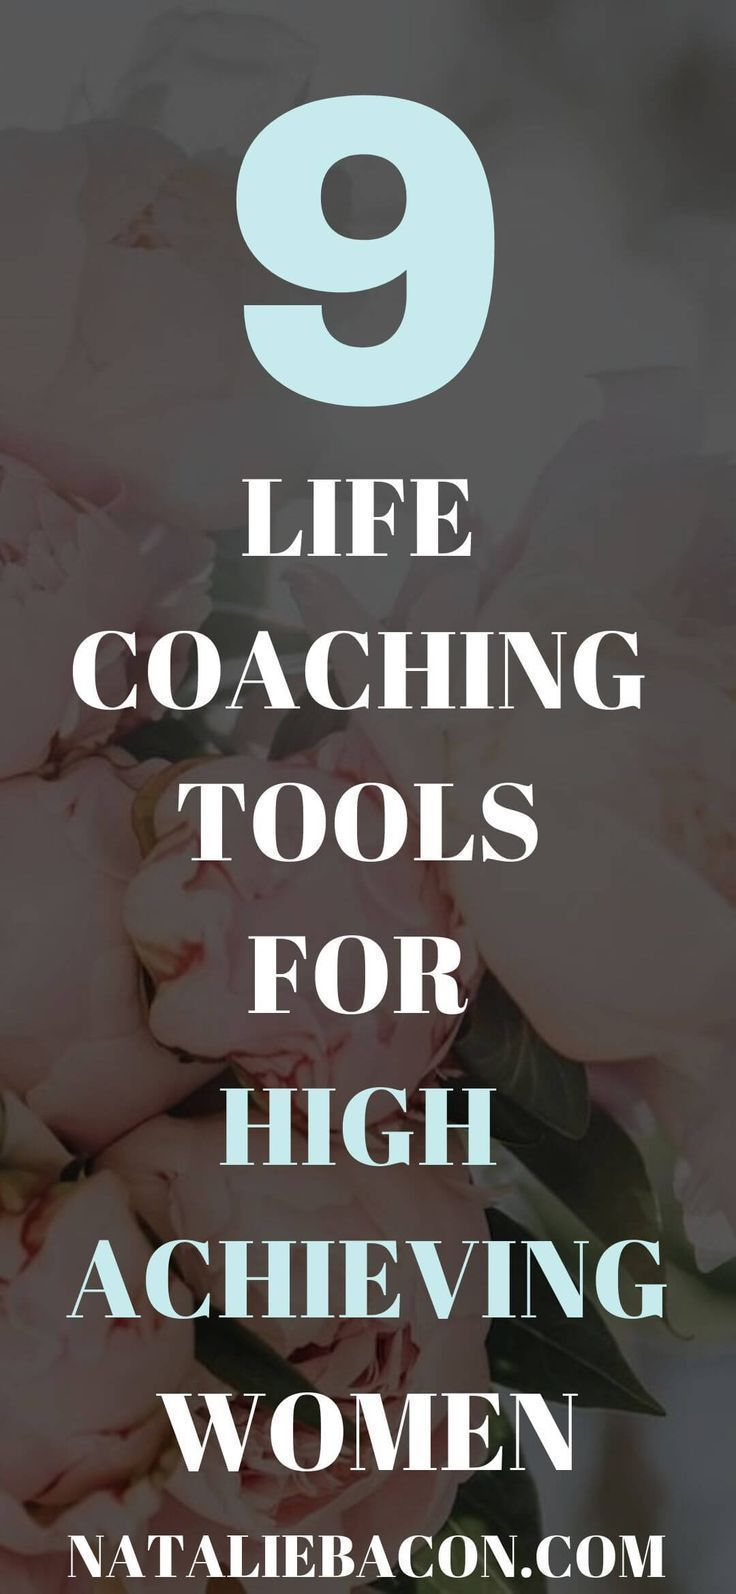 9 Life Coaching Tools For High Achieving Women #lifecoachingtools 9 Life Coaching Tools For High Achieving Women #lifecoachingtools 9 Life Coaching Tools For High Achieving Women #lifecoachingtools 9 Life Coaching Tools For High Achieving Women #lifecoachingtools